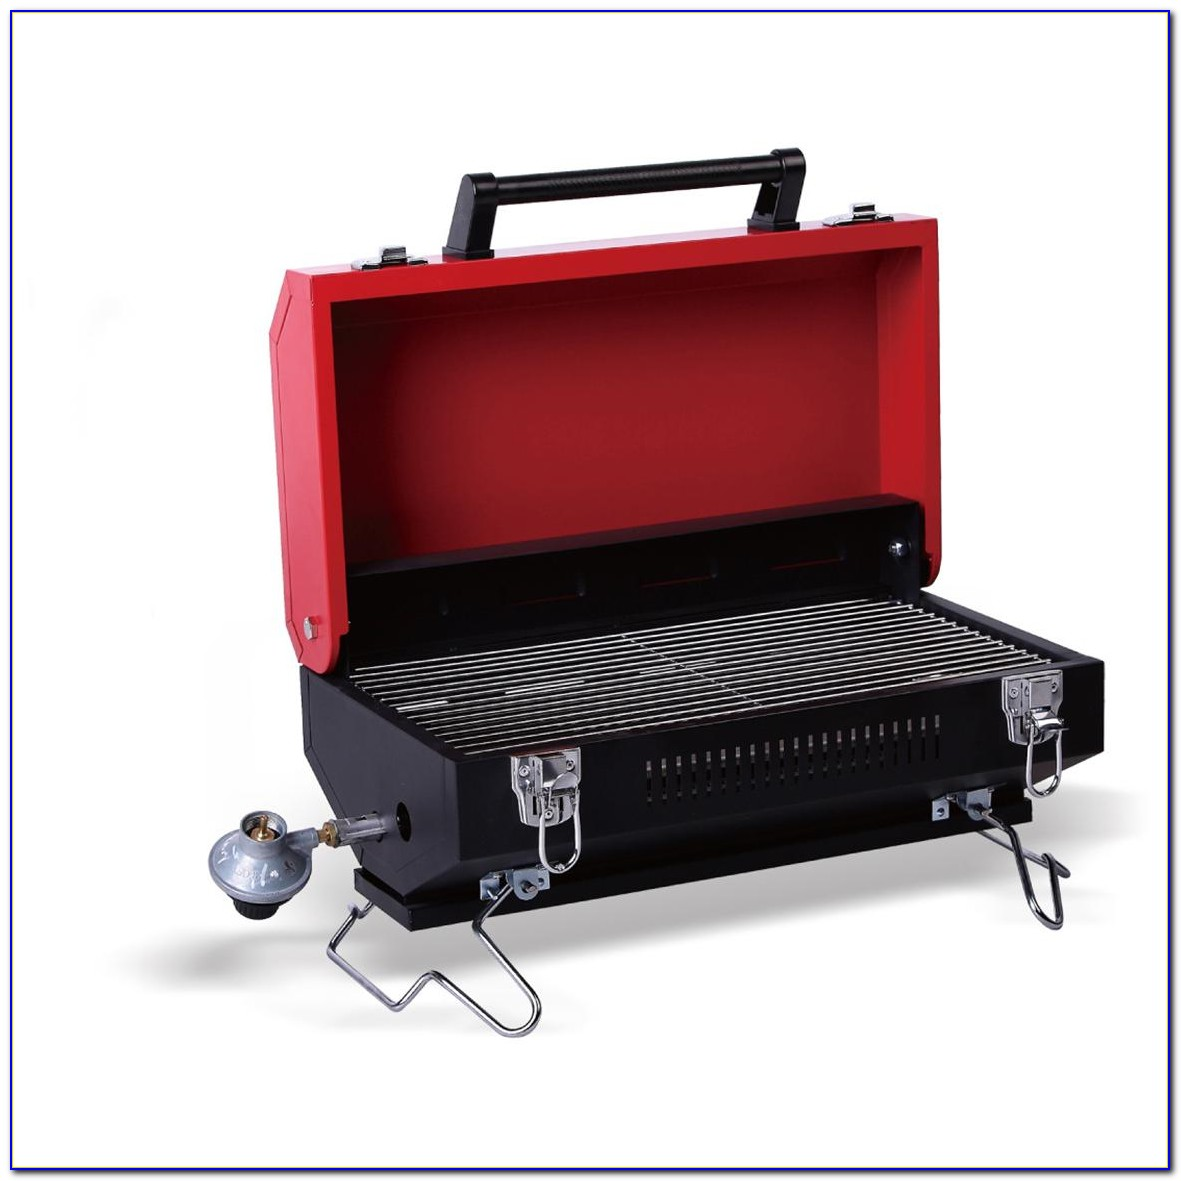 Brinkmann Portable Tabletop Gas Grill